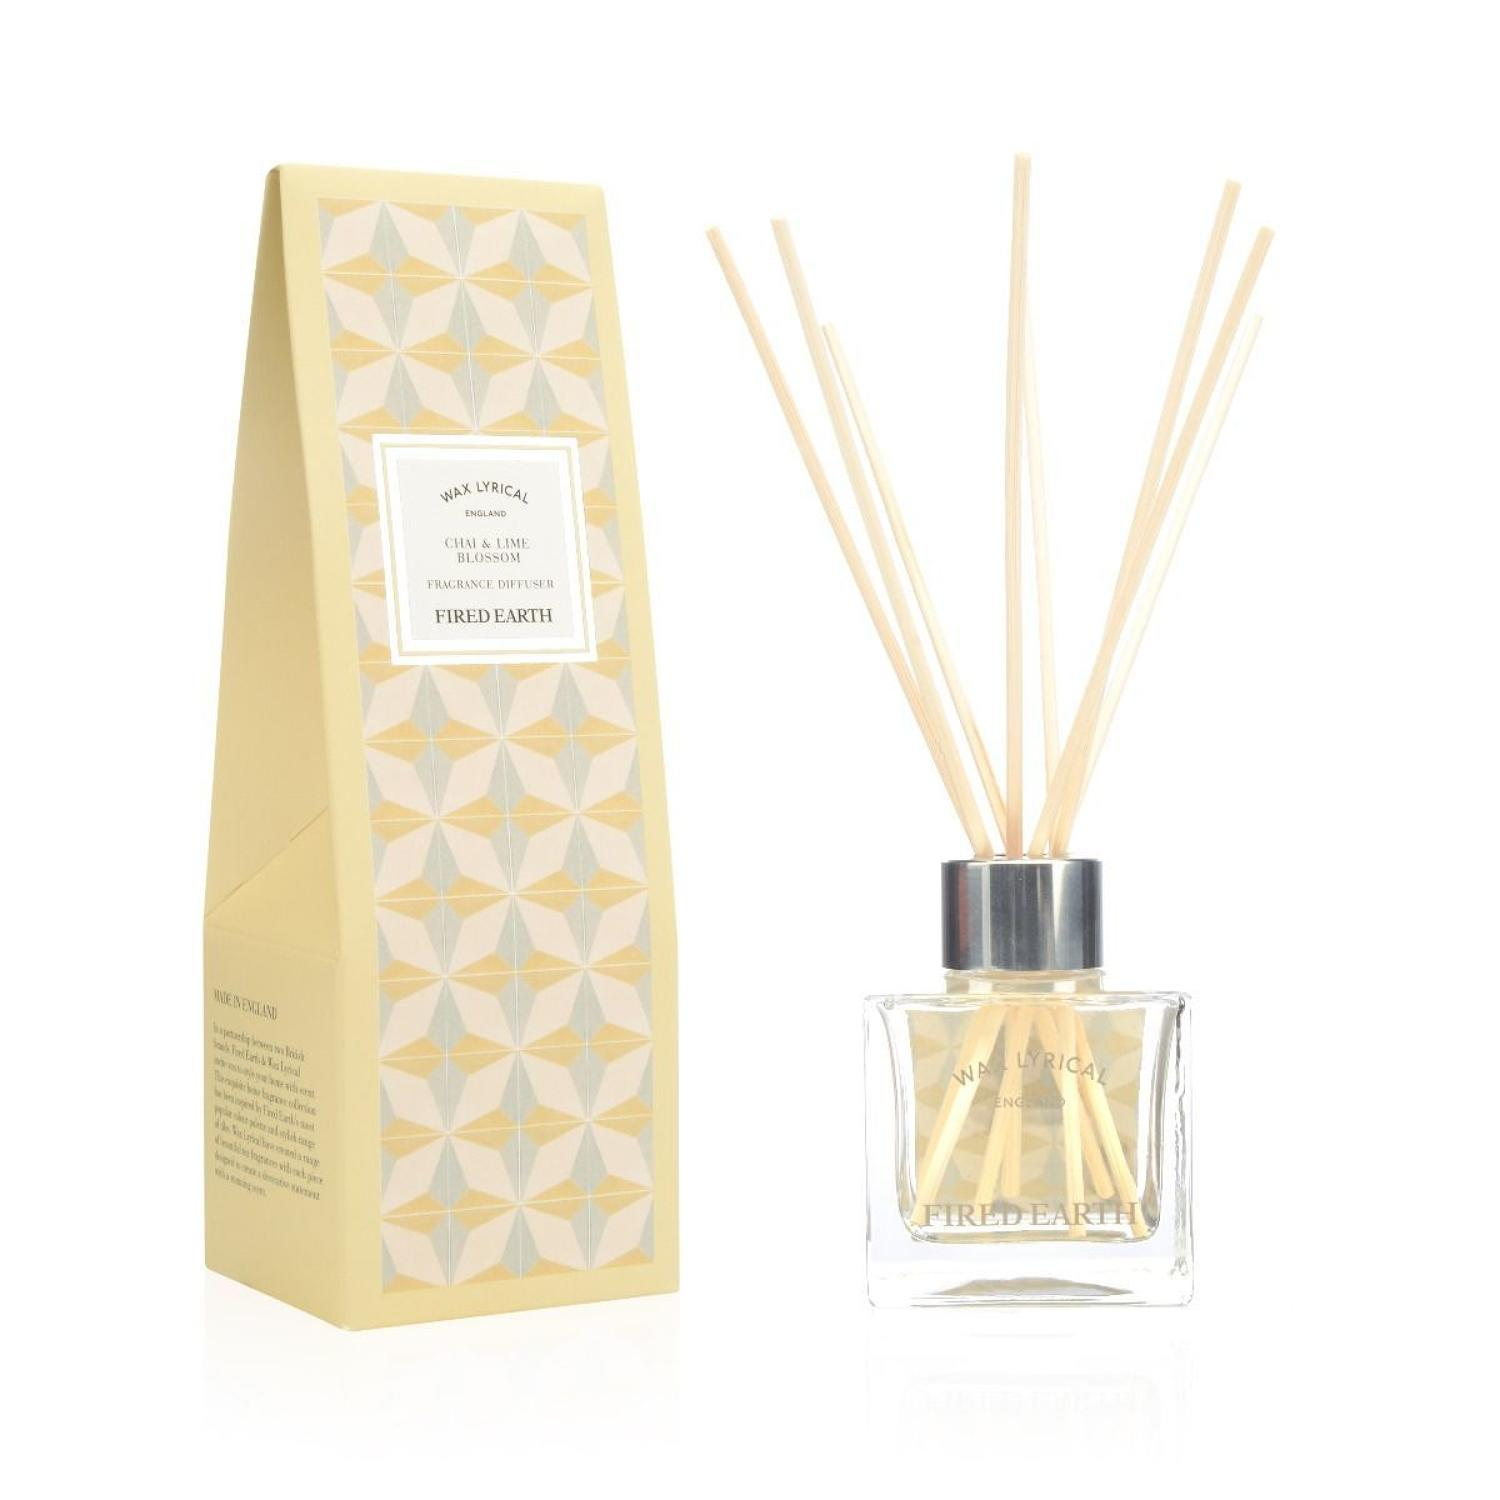 Wax Lyrical Fired Earth Chai & Lime Blossom Diffuser